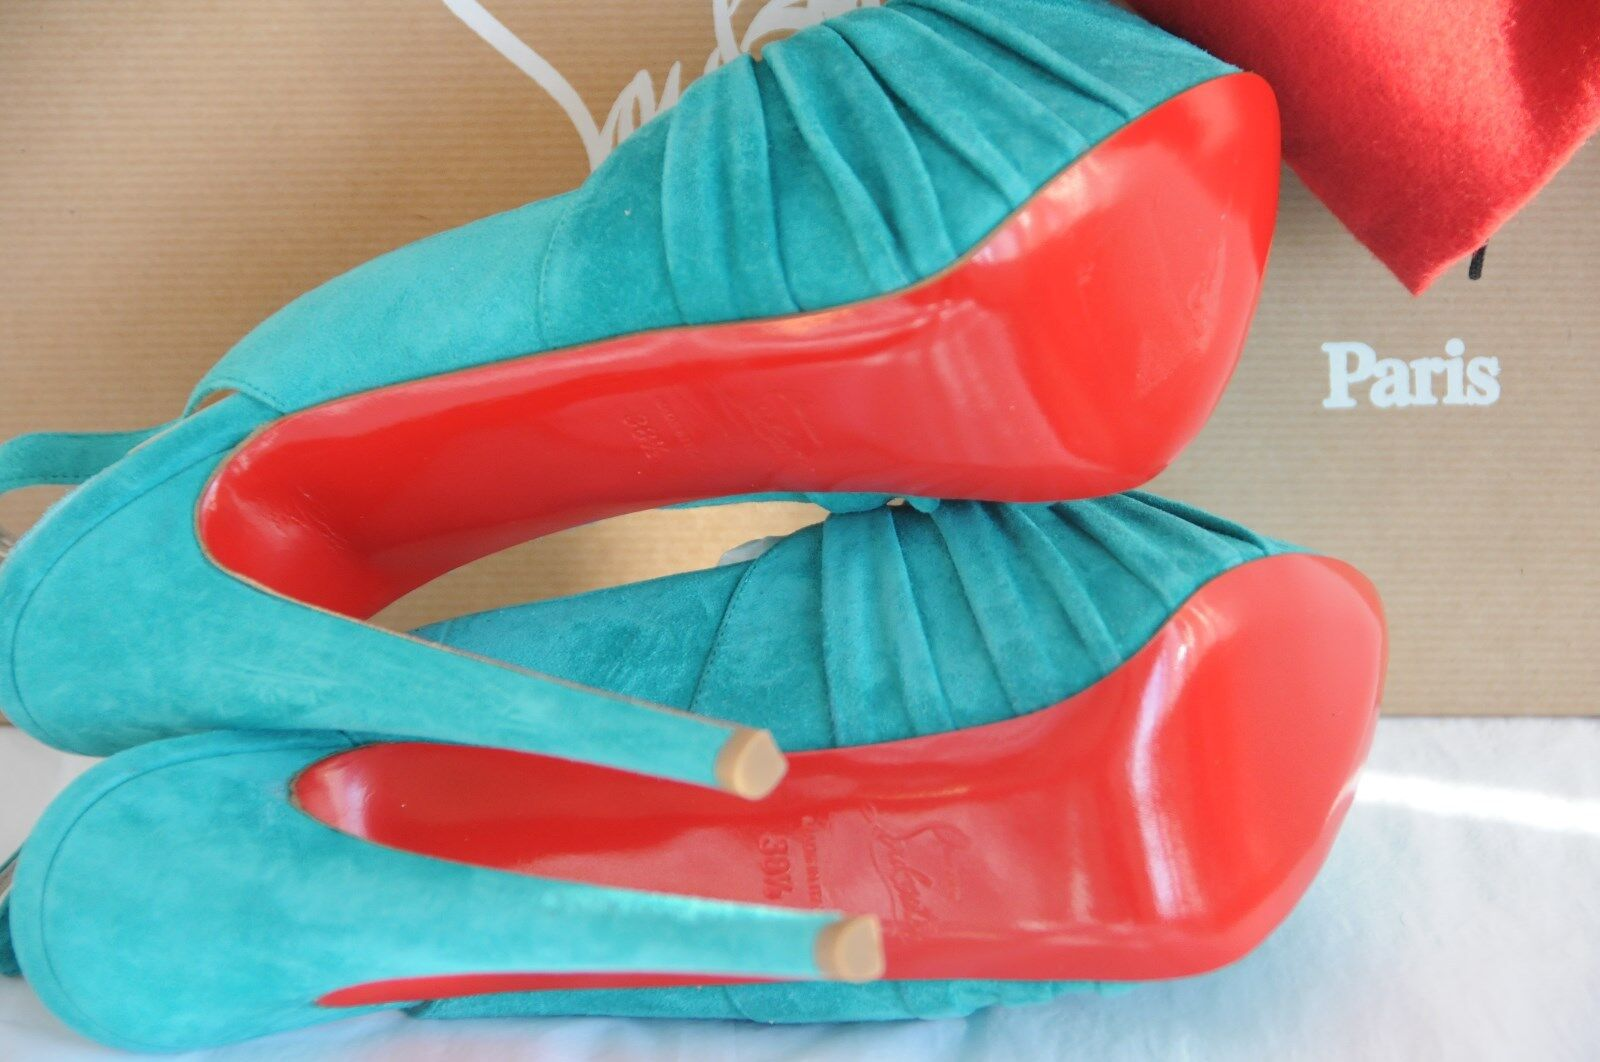 1145 New New New Christian Louboutin Miss Benin Turquoise 160 Double Plat schuhe 36 39.5 a7770c